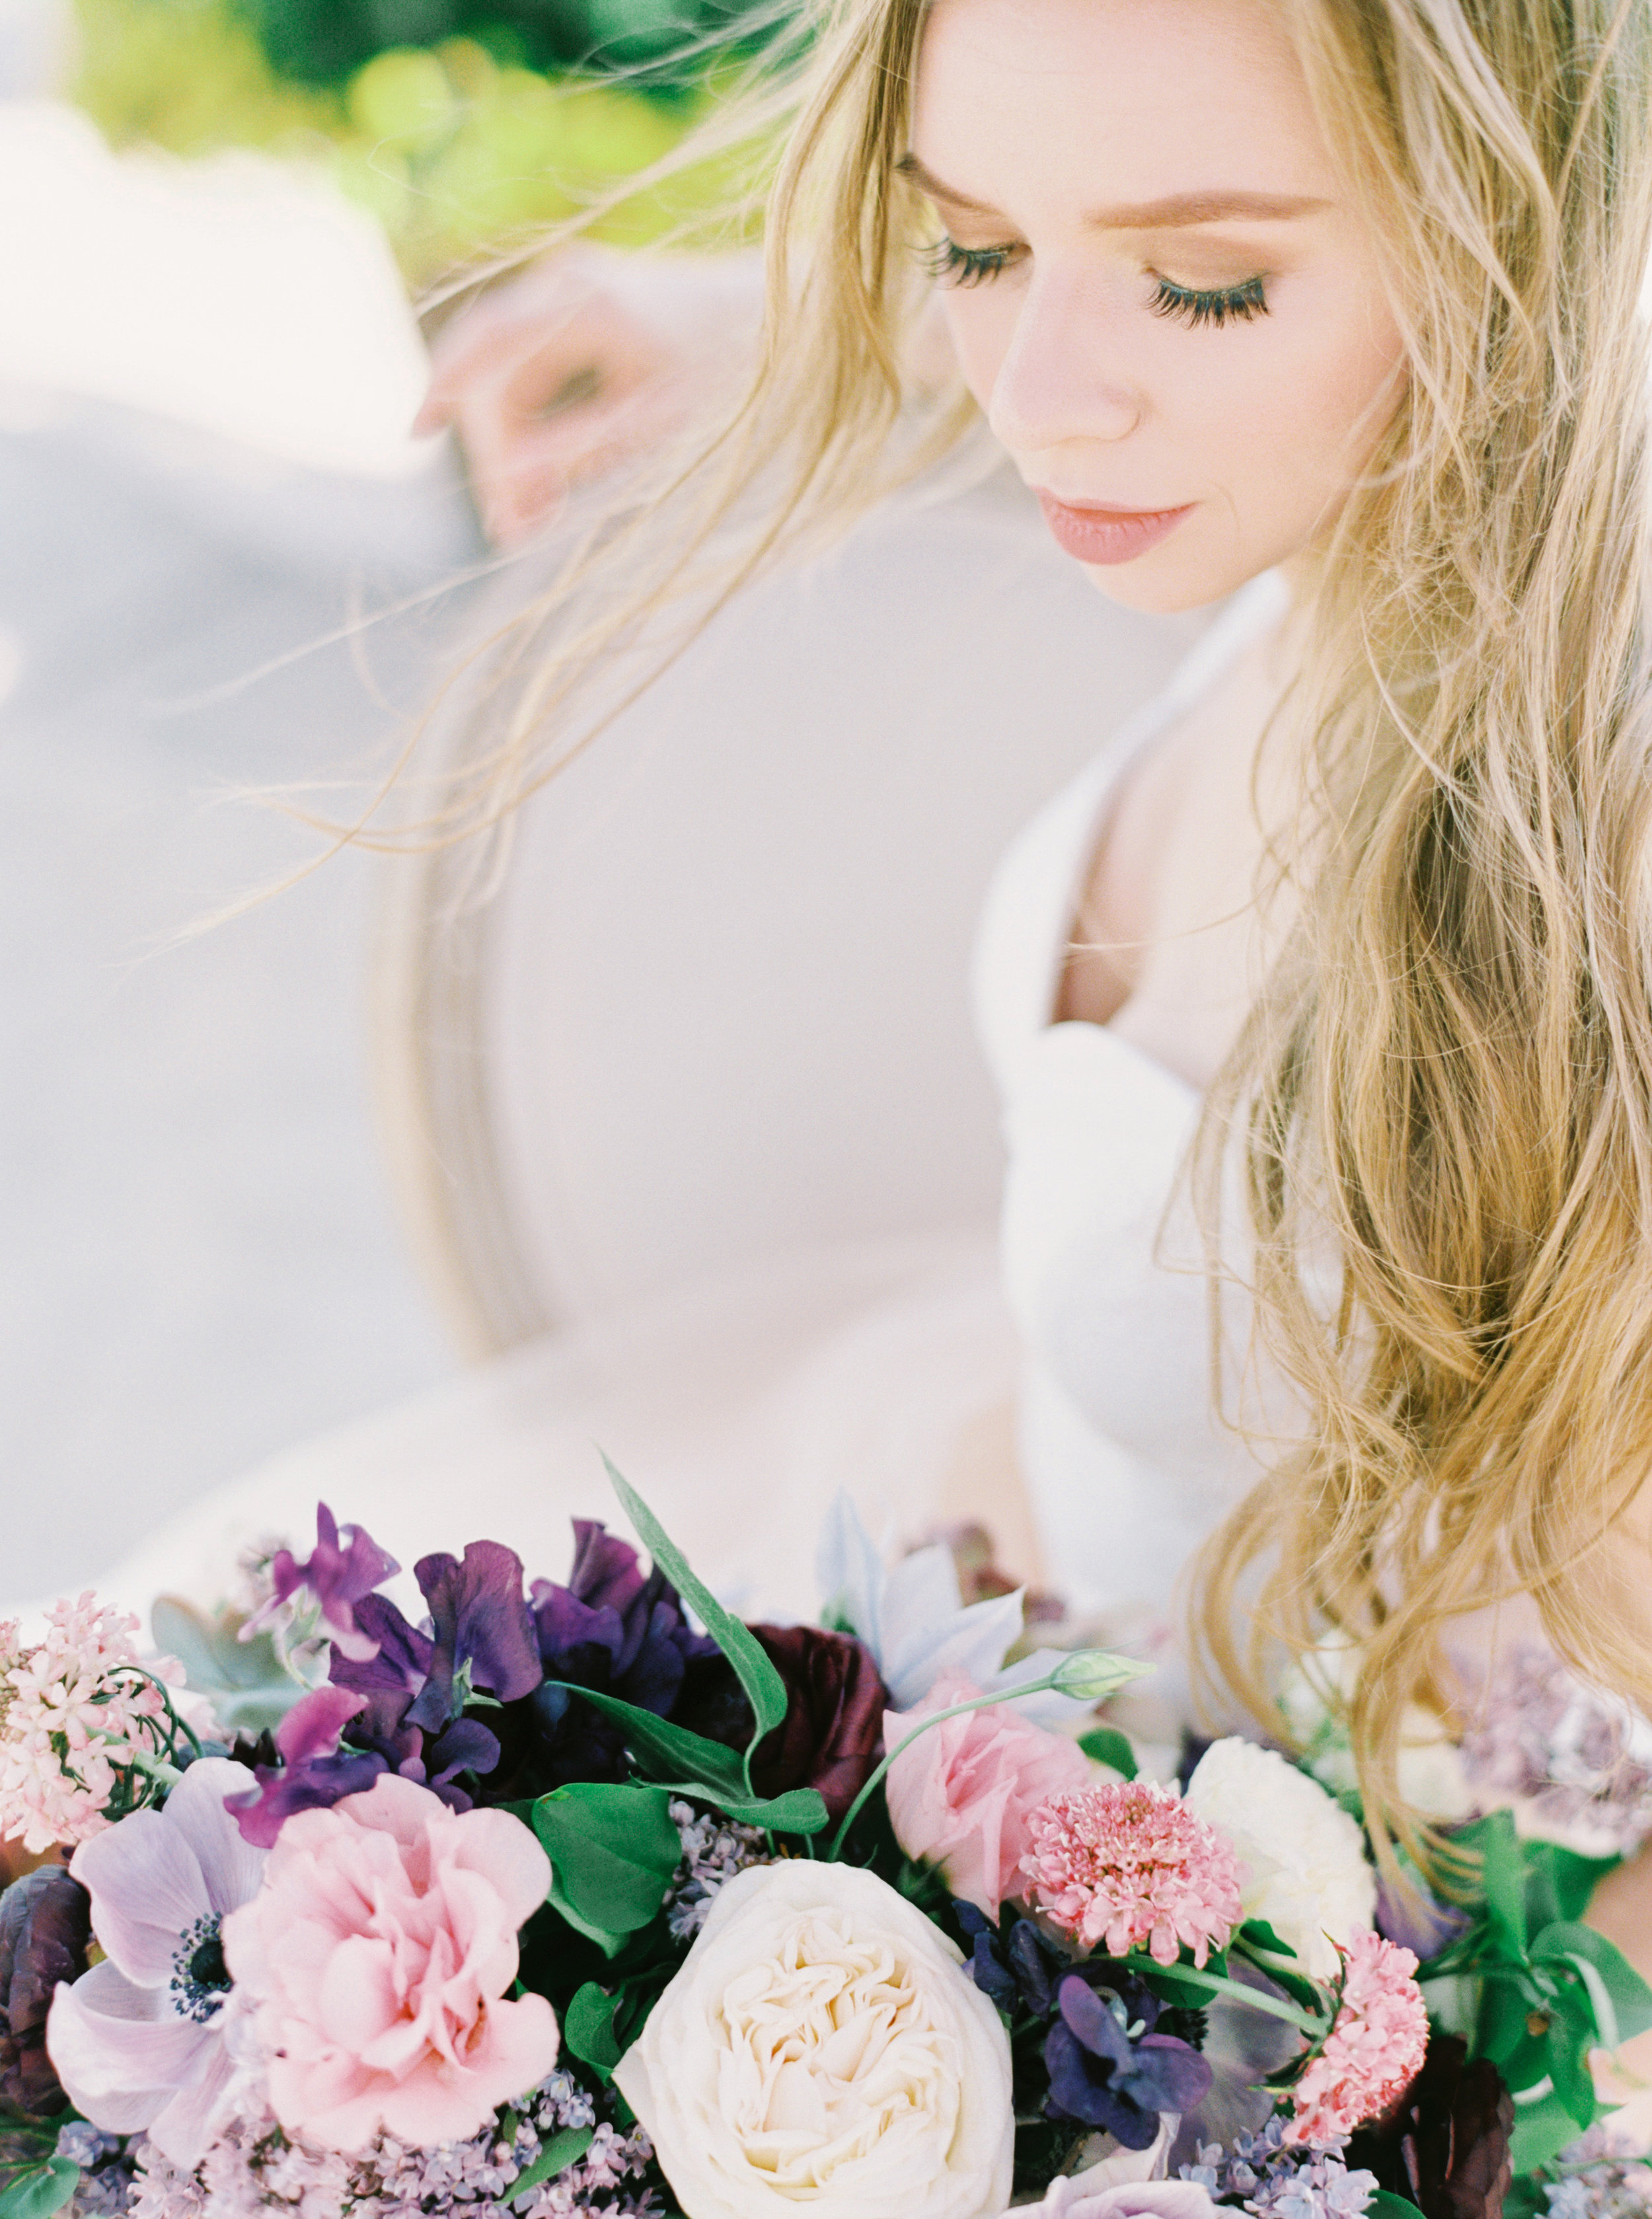 This-Love-of-Yours-Kirigin-Cellars-Flower-Arch-Styled-Shoot-068.jpg